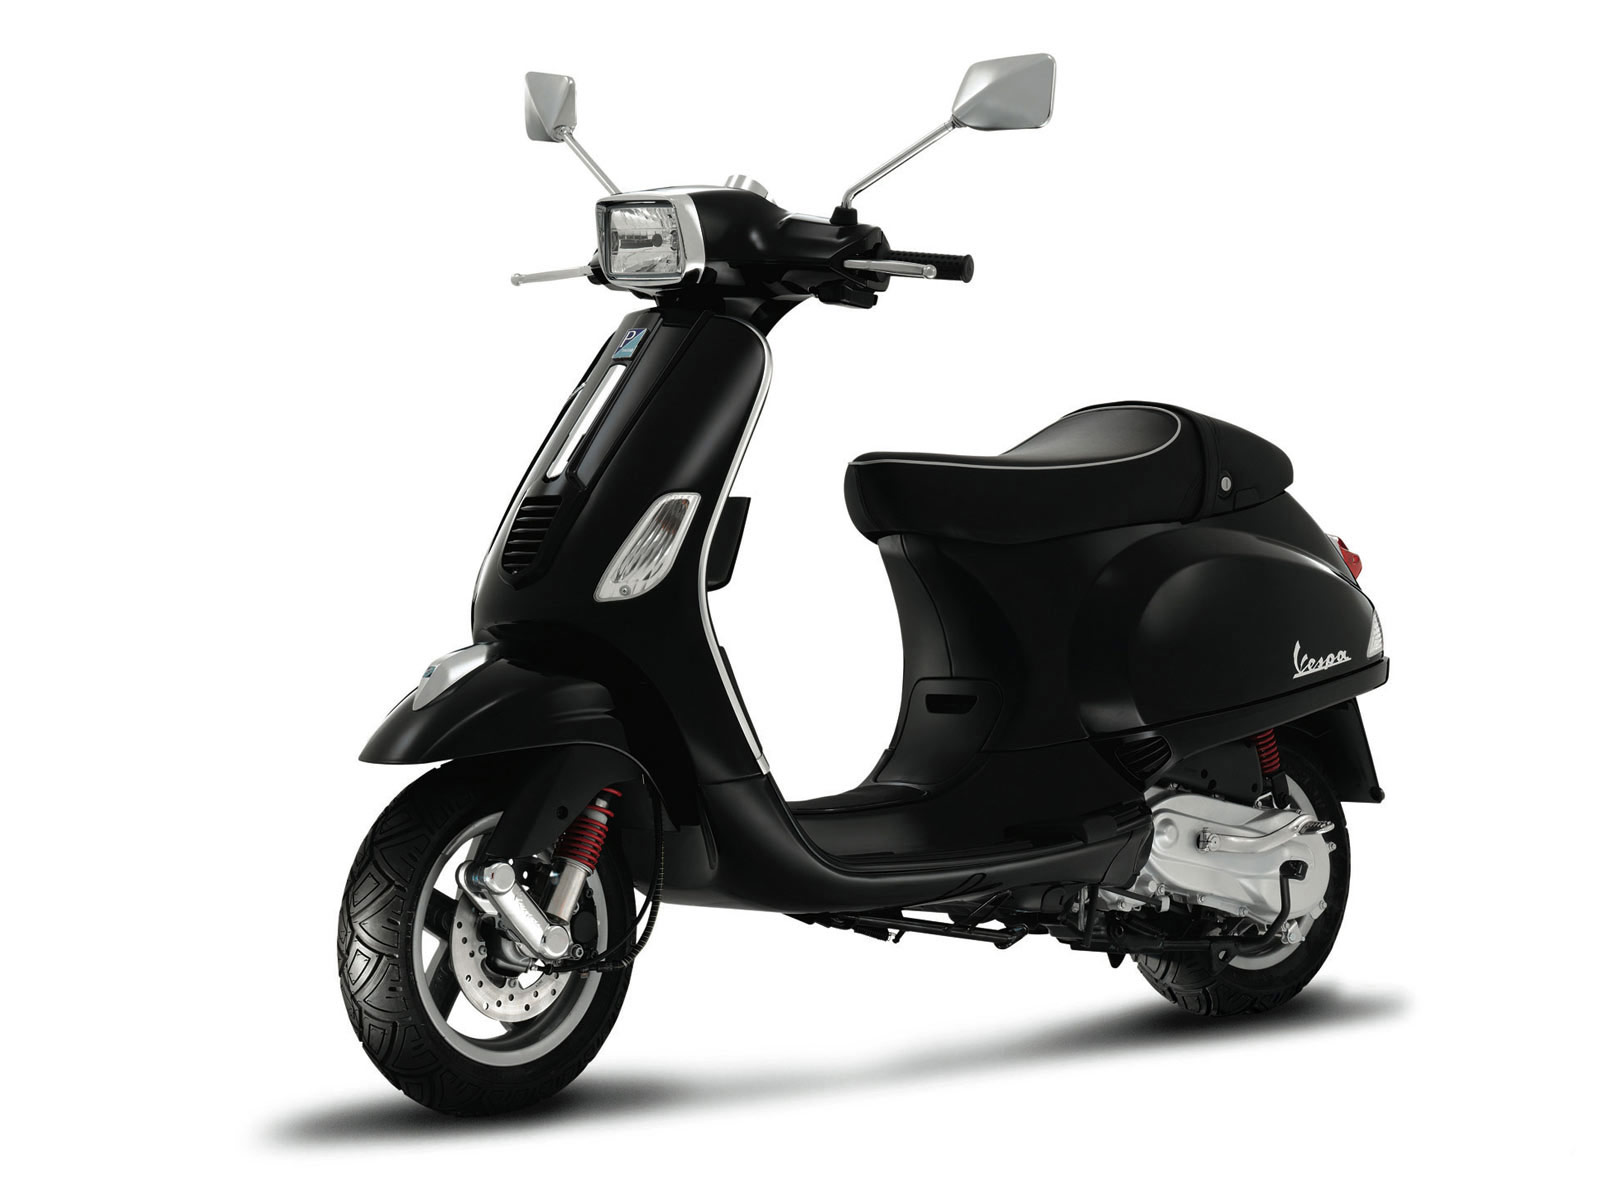 2008 VESPA S50 Scooter Pictures Accident lawyers info